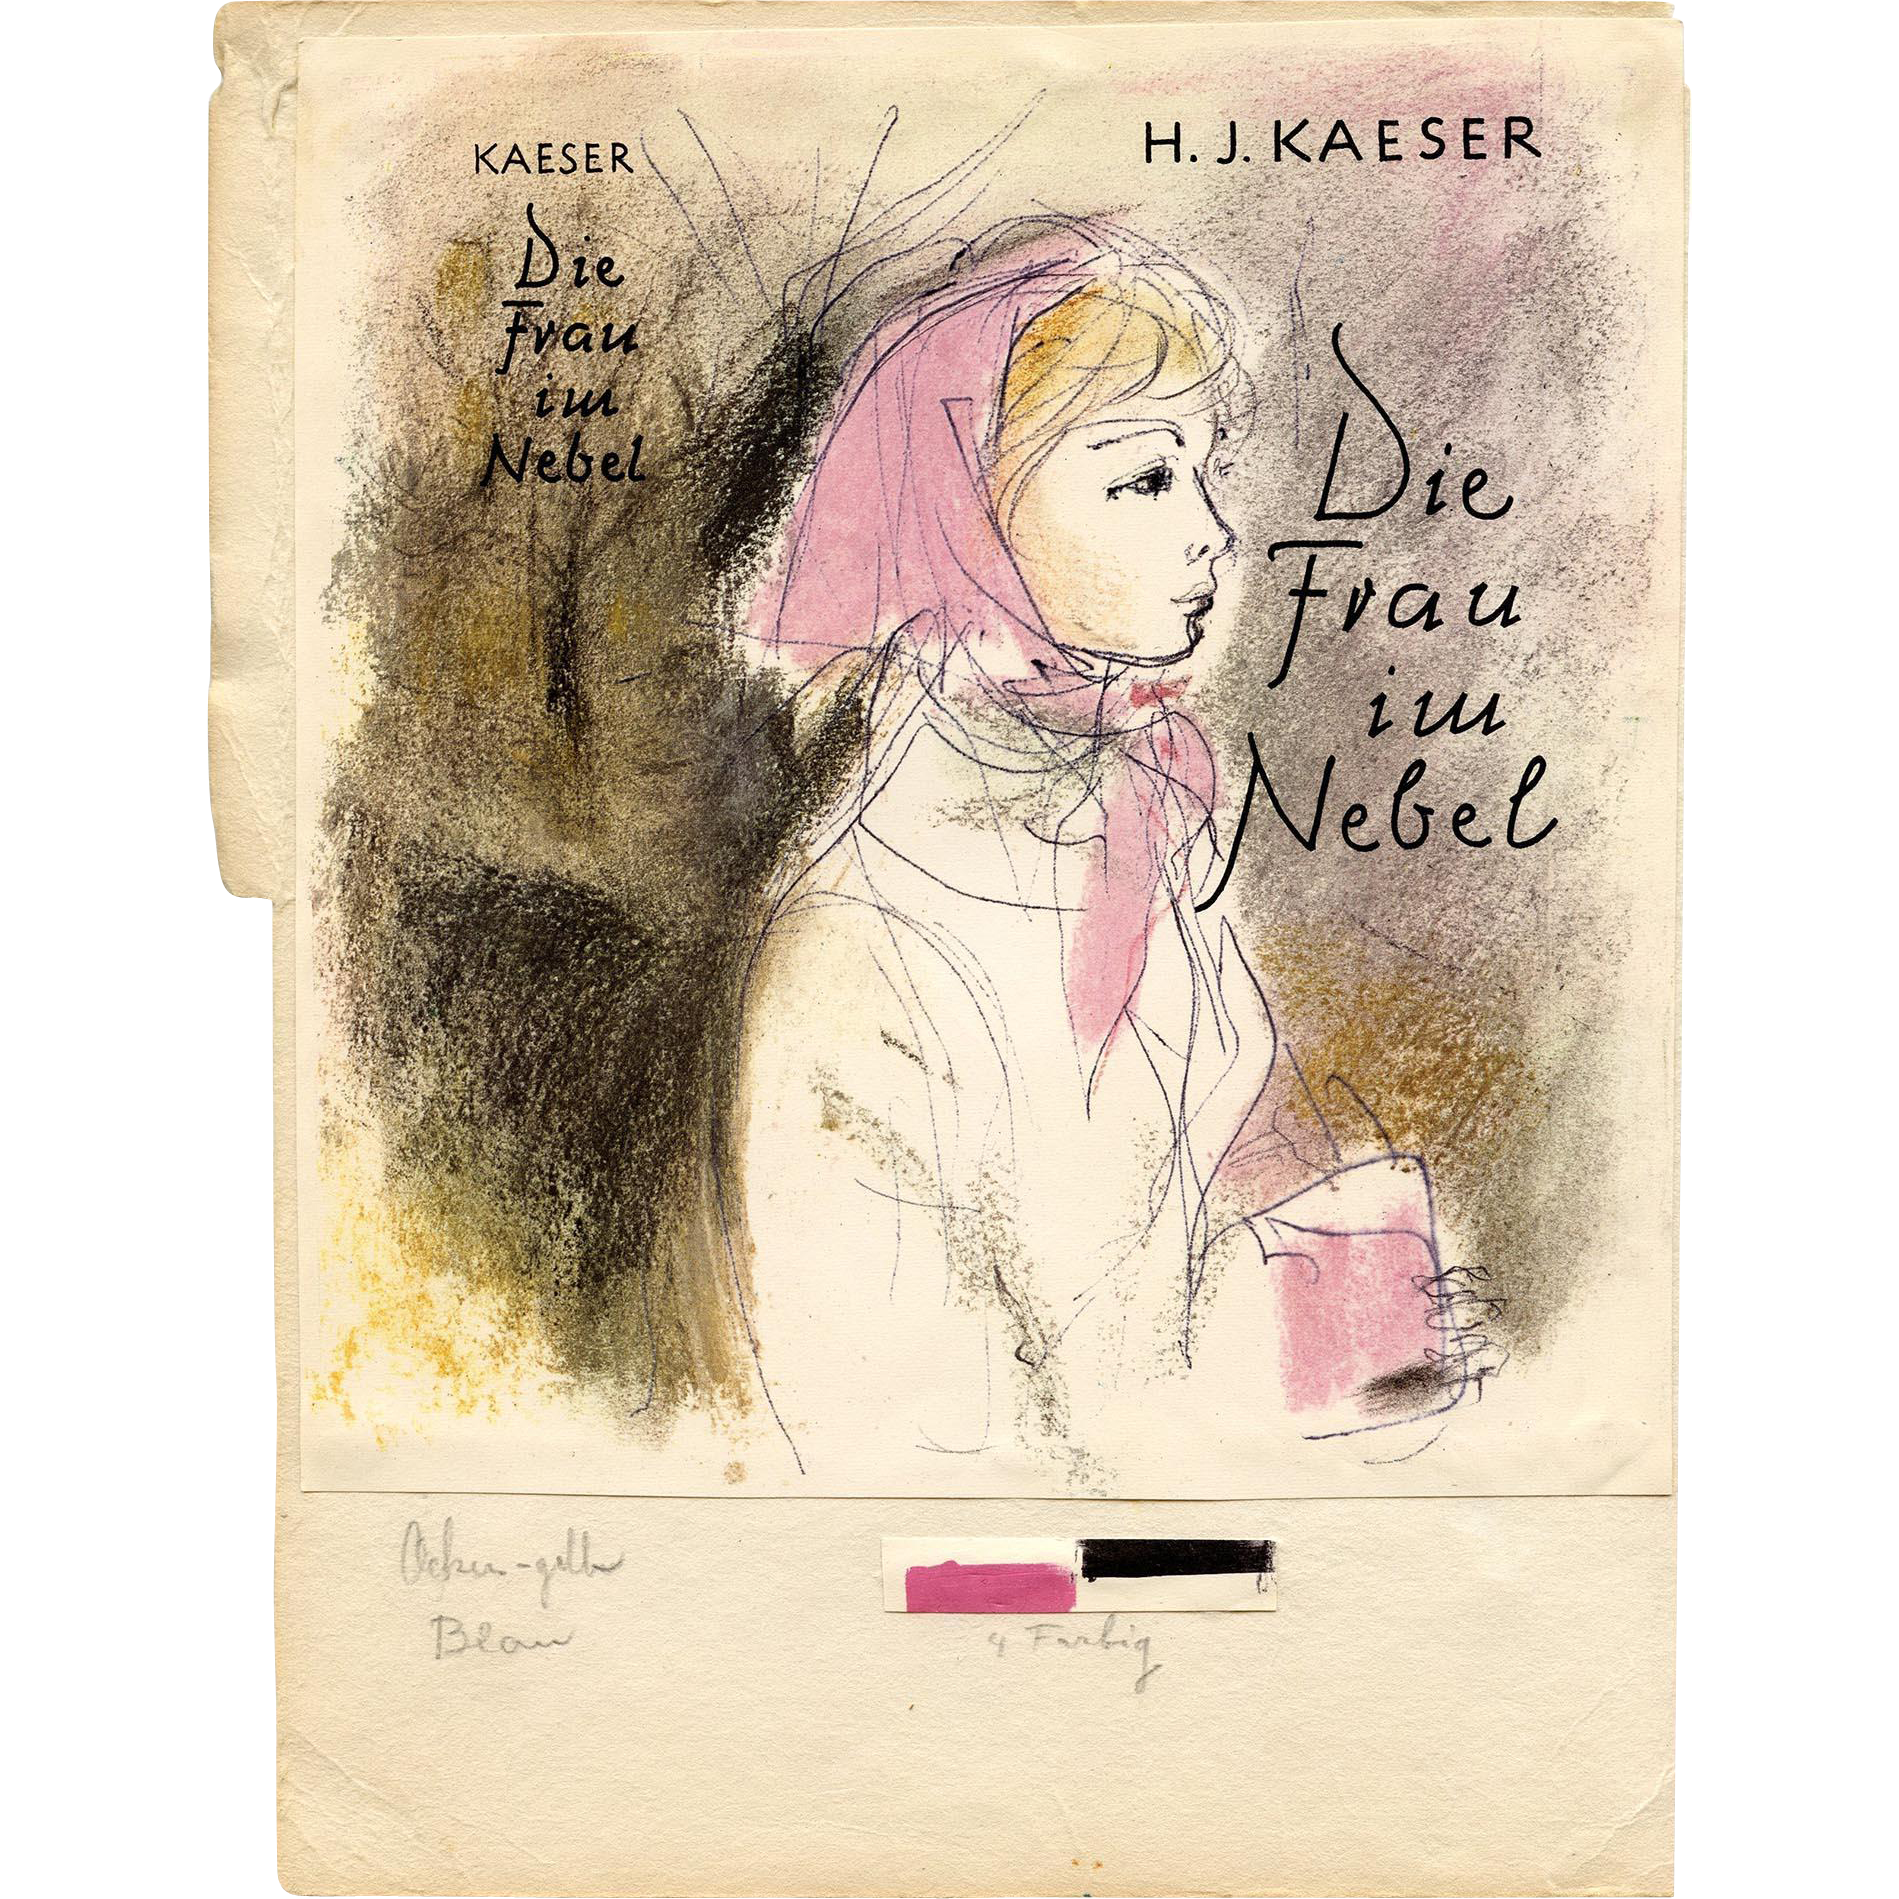 German Jewish Author H.J. Kaeser Printer's Proof of Novel Front Cover Circa 1962